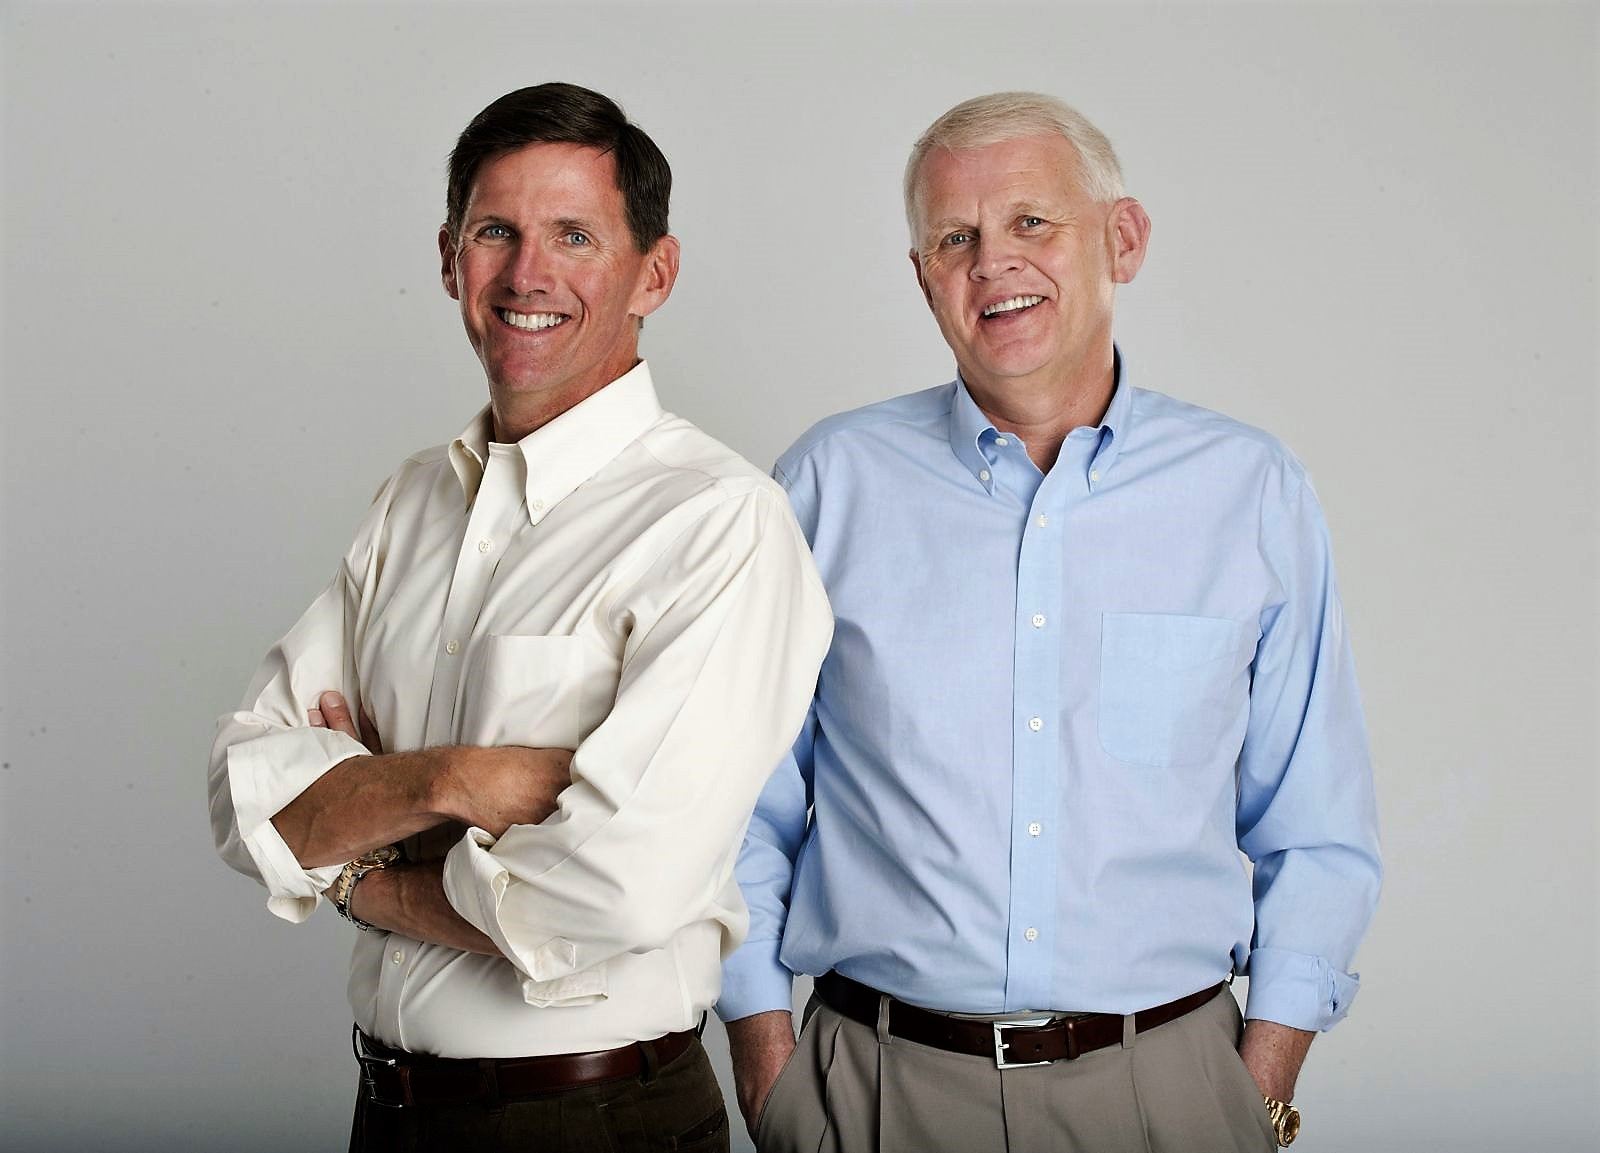 Steven (left) and Stewart Mungo will be presented the Humanitarian of the Year award from the United Way. (Photo/Provided)